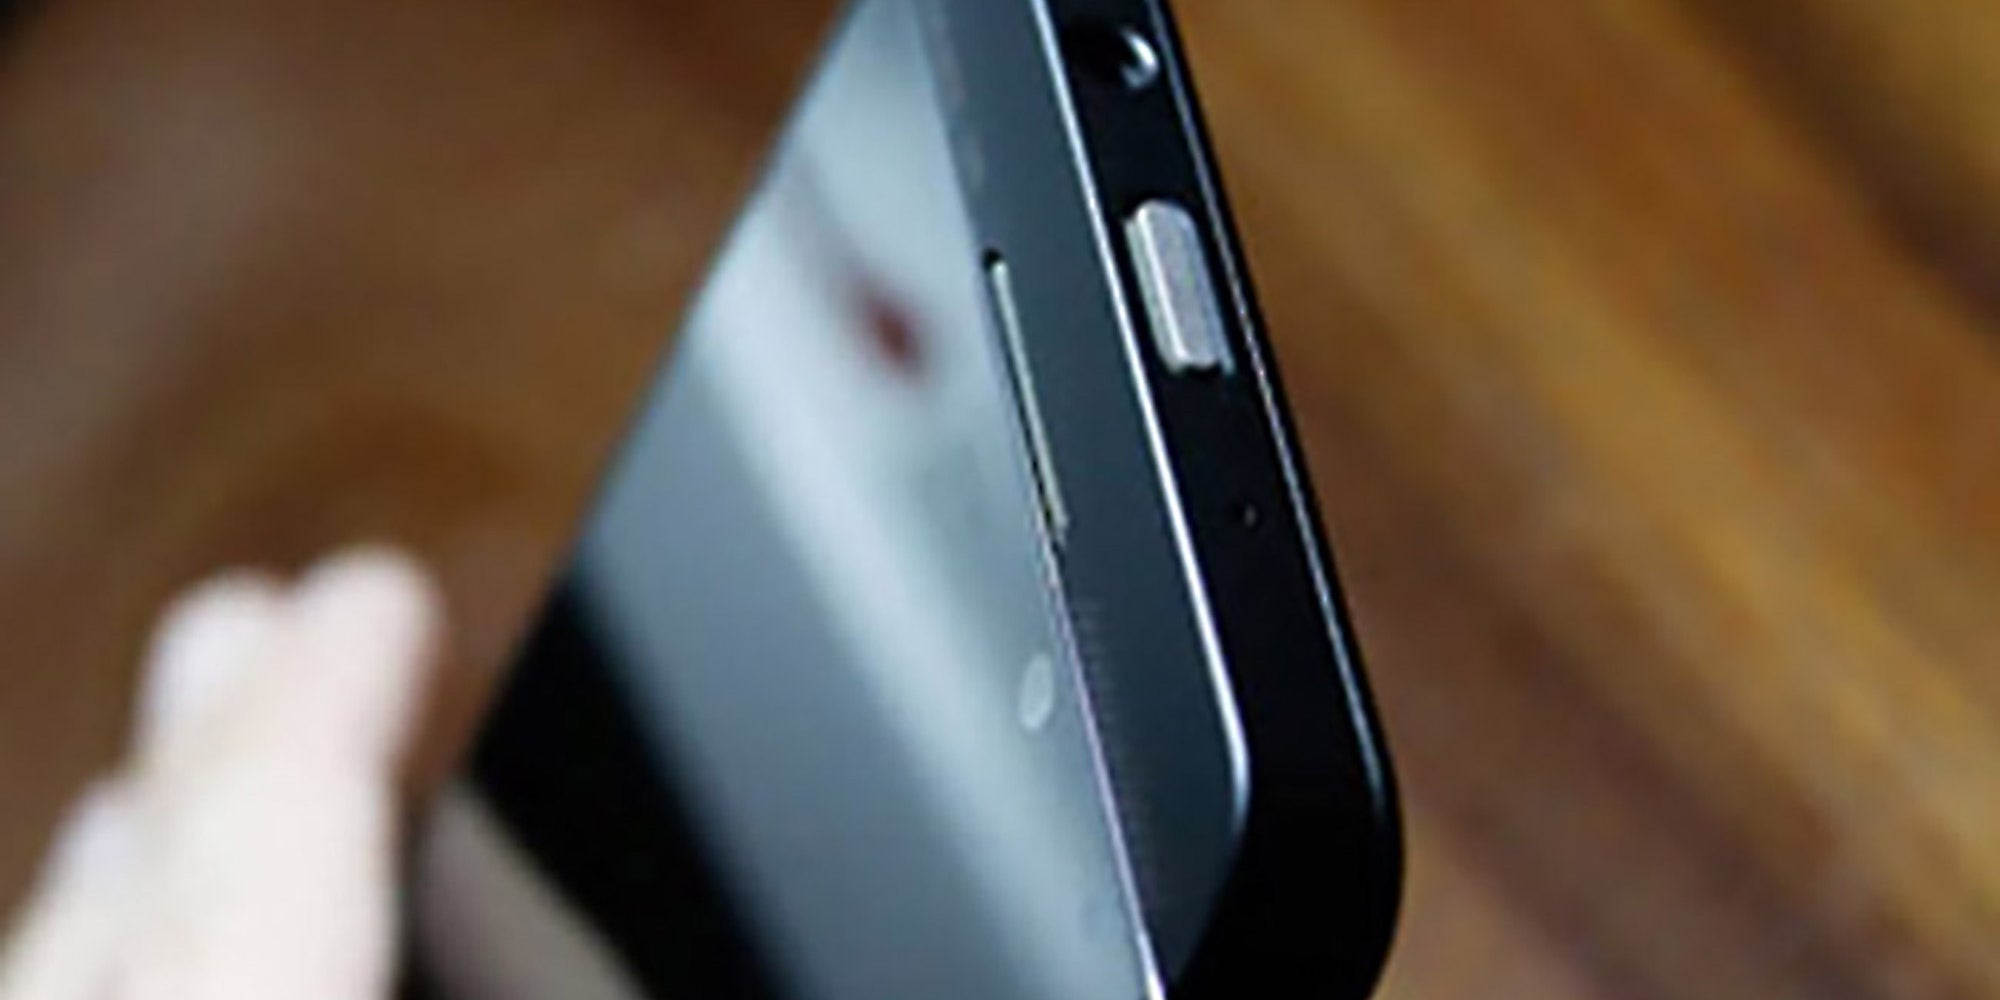 Need a New Smartphone? Keep an Eye Out for These Upcoming Devices